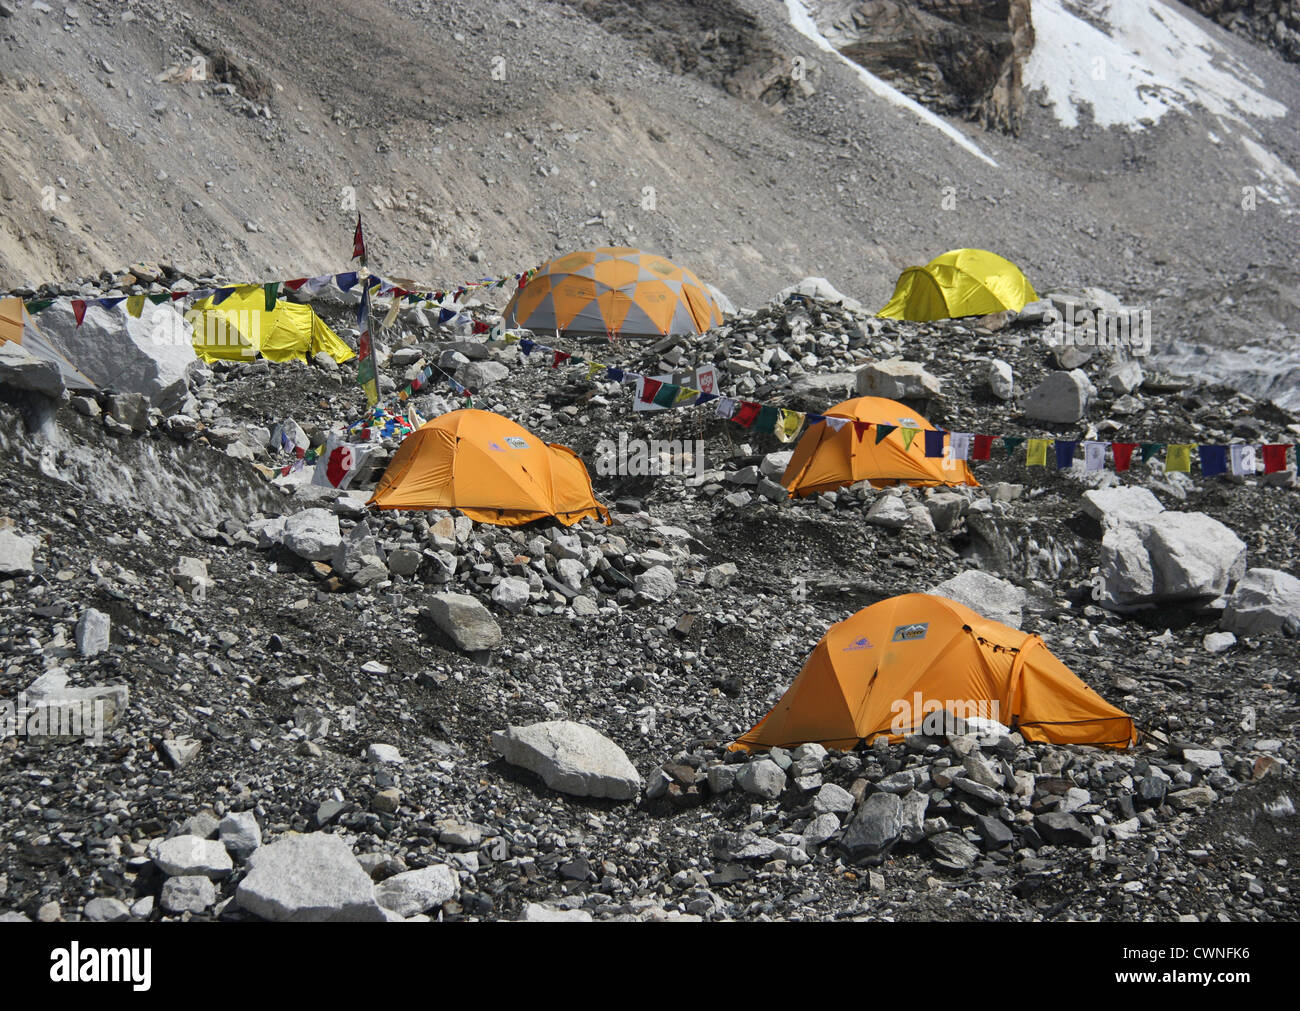 Everest Base Camp, 5364m, goal for many trekkers and starting point for climbers targeting Mt Everest, Khumbu Region, - Stock Image